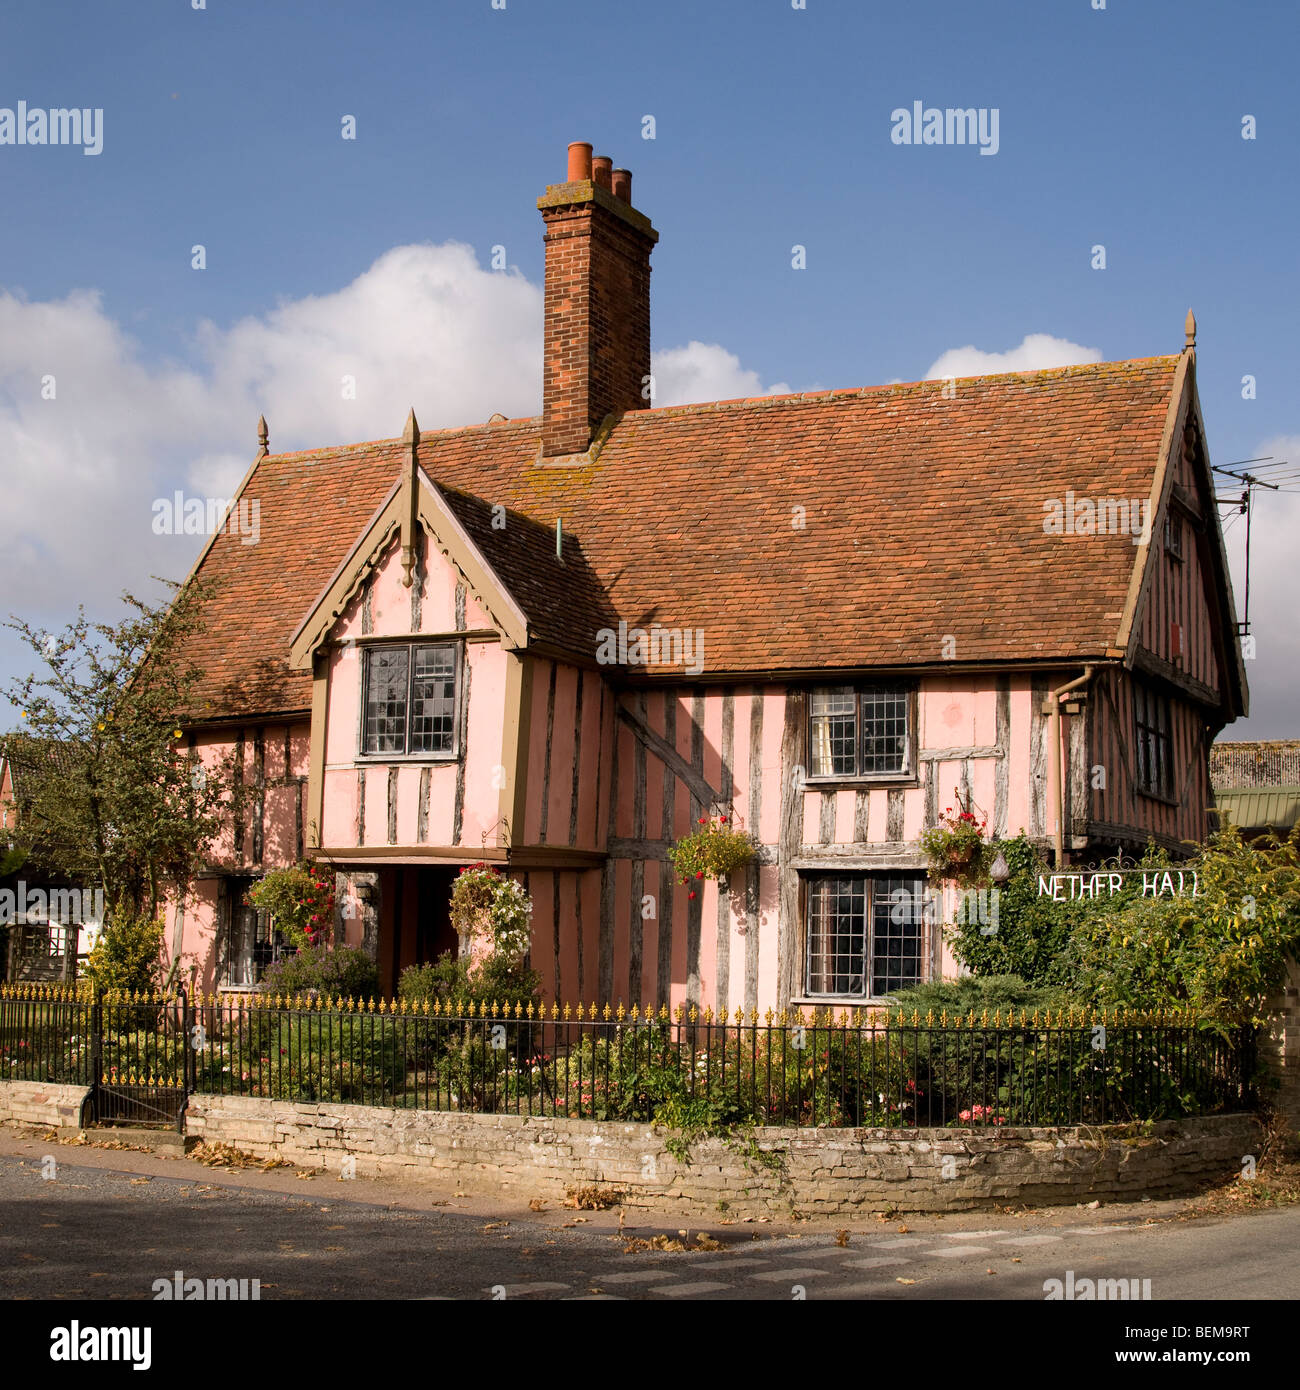 Nether Hall in Cavendish, Suffolk, England - Stock Image